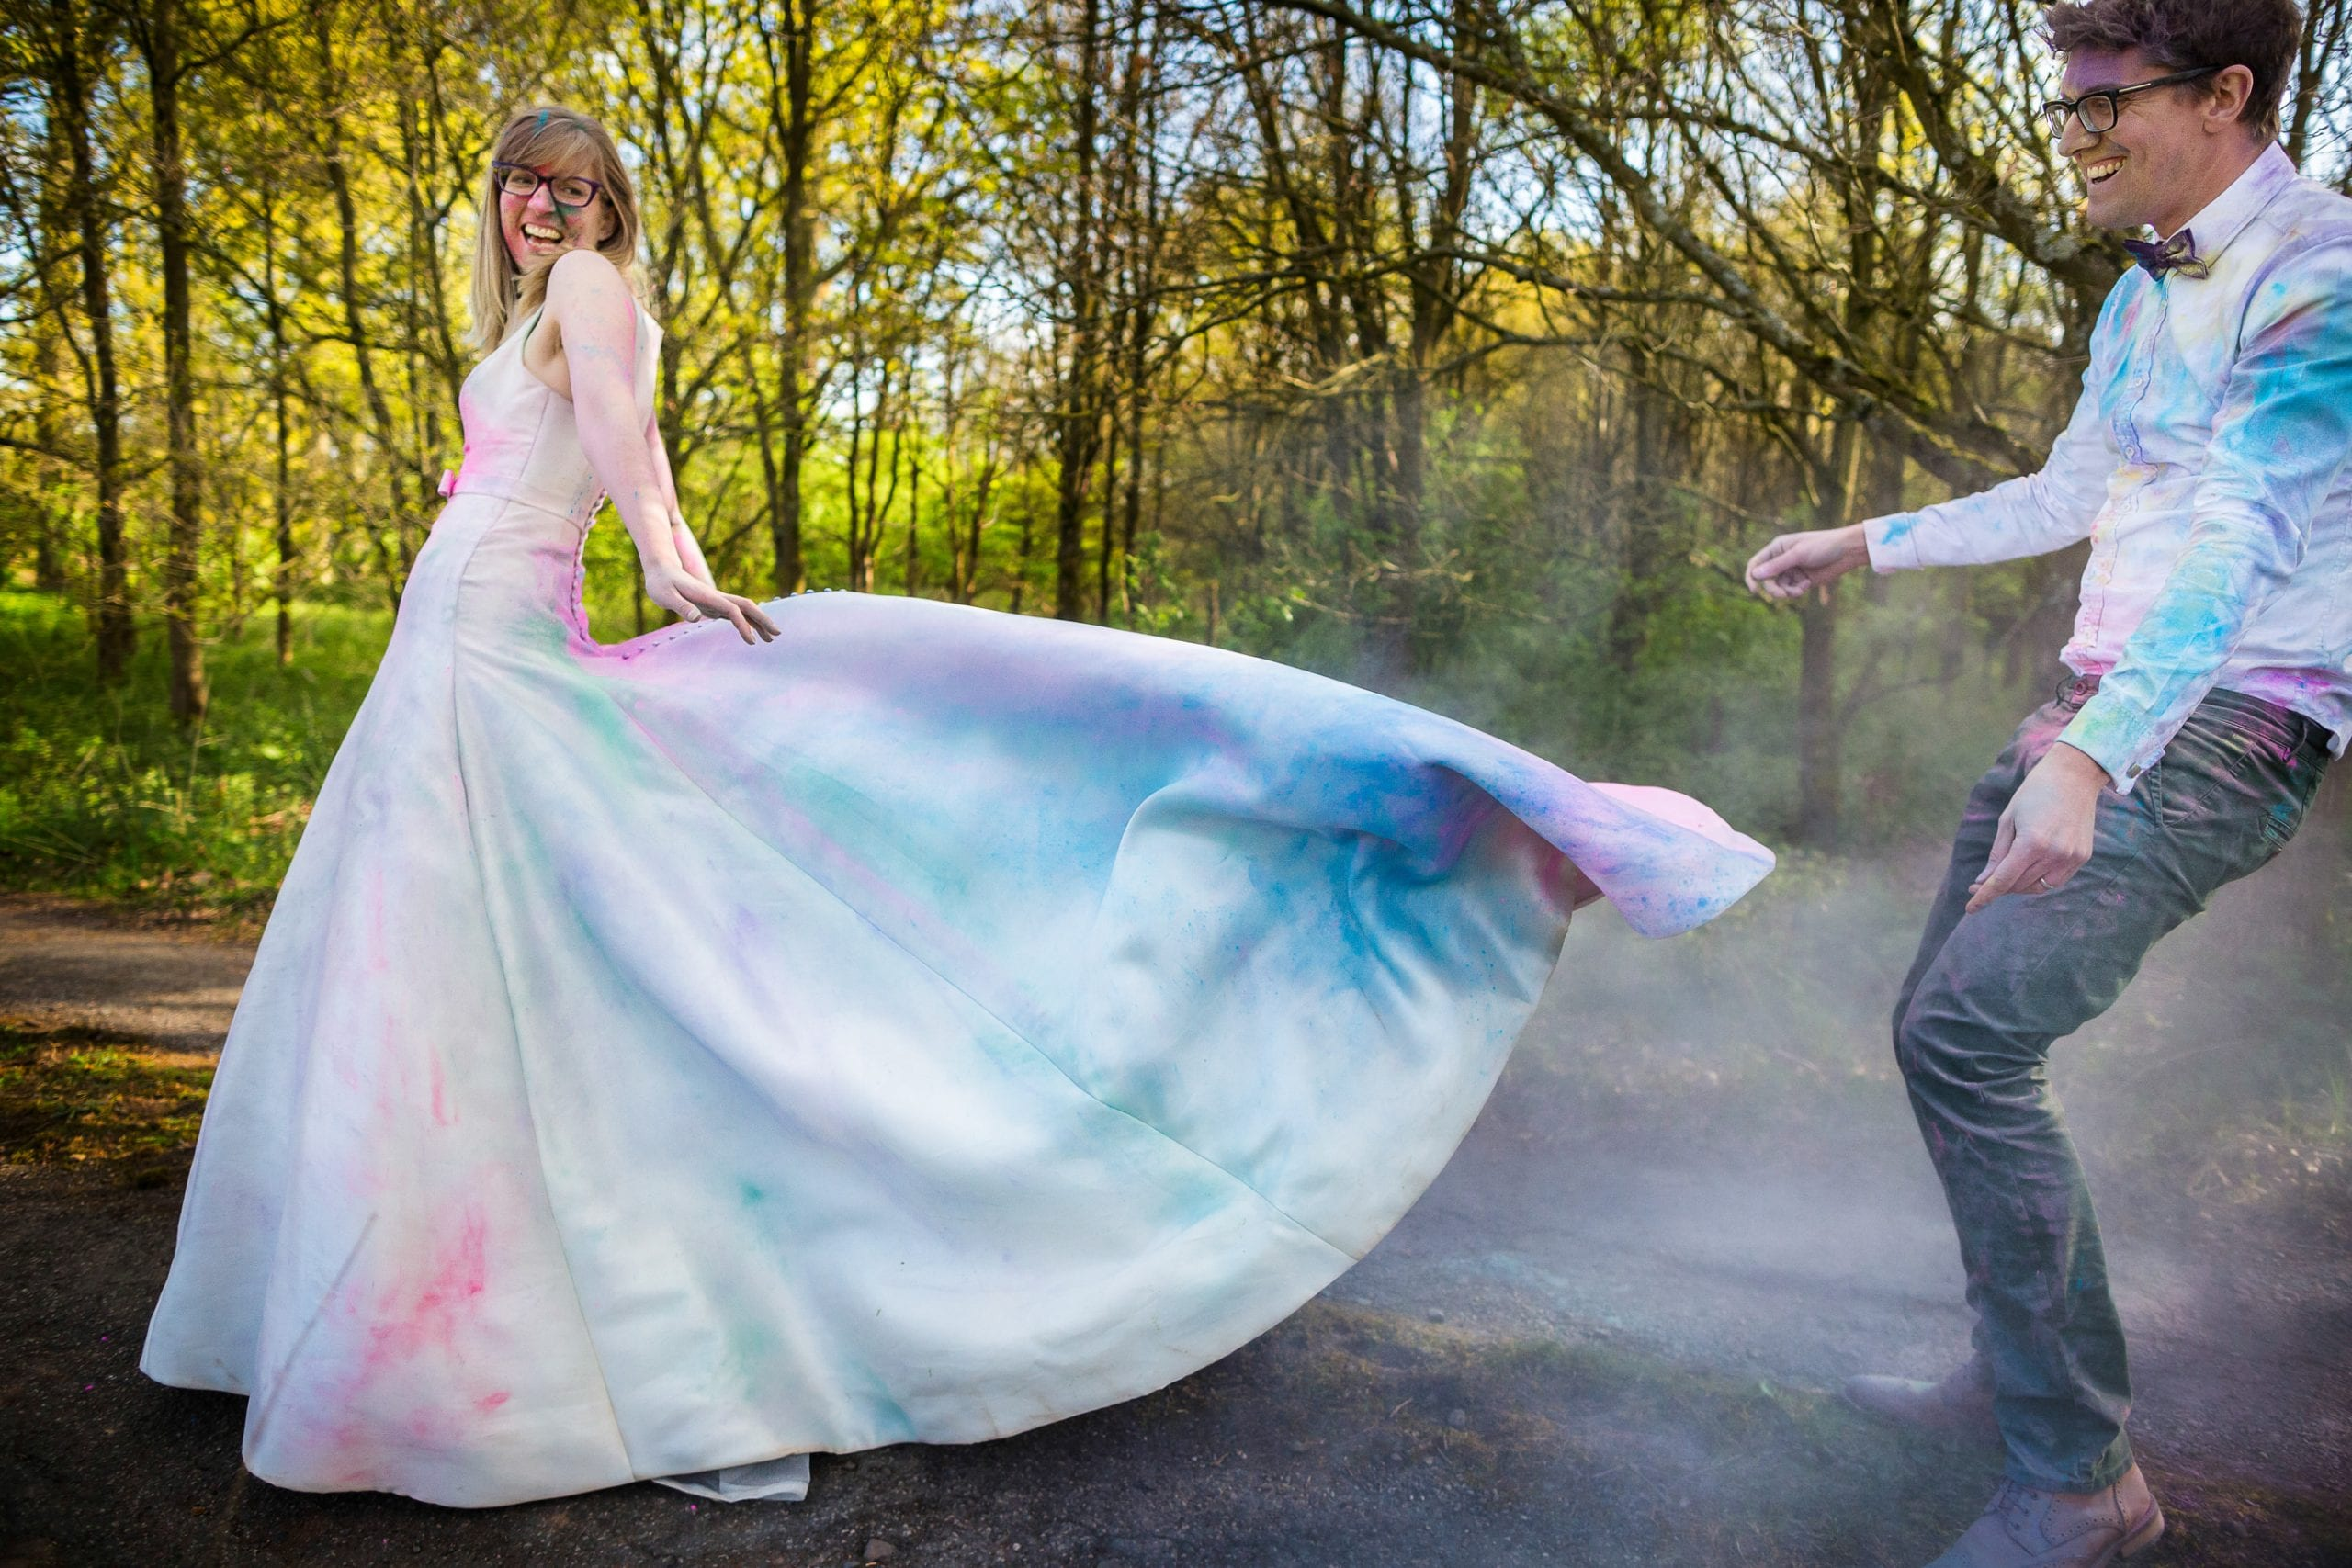 A trash the wedding dress photoshoot, with the brides dress covered in coloured powder - being flung in the air. Both the bride and groom are laughing. By Warwickshire wedding photographer, S2 Images